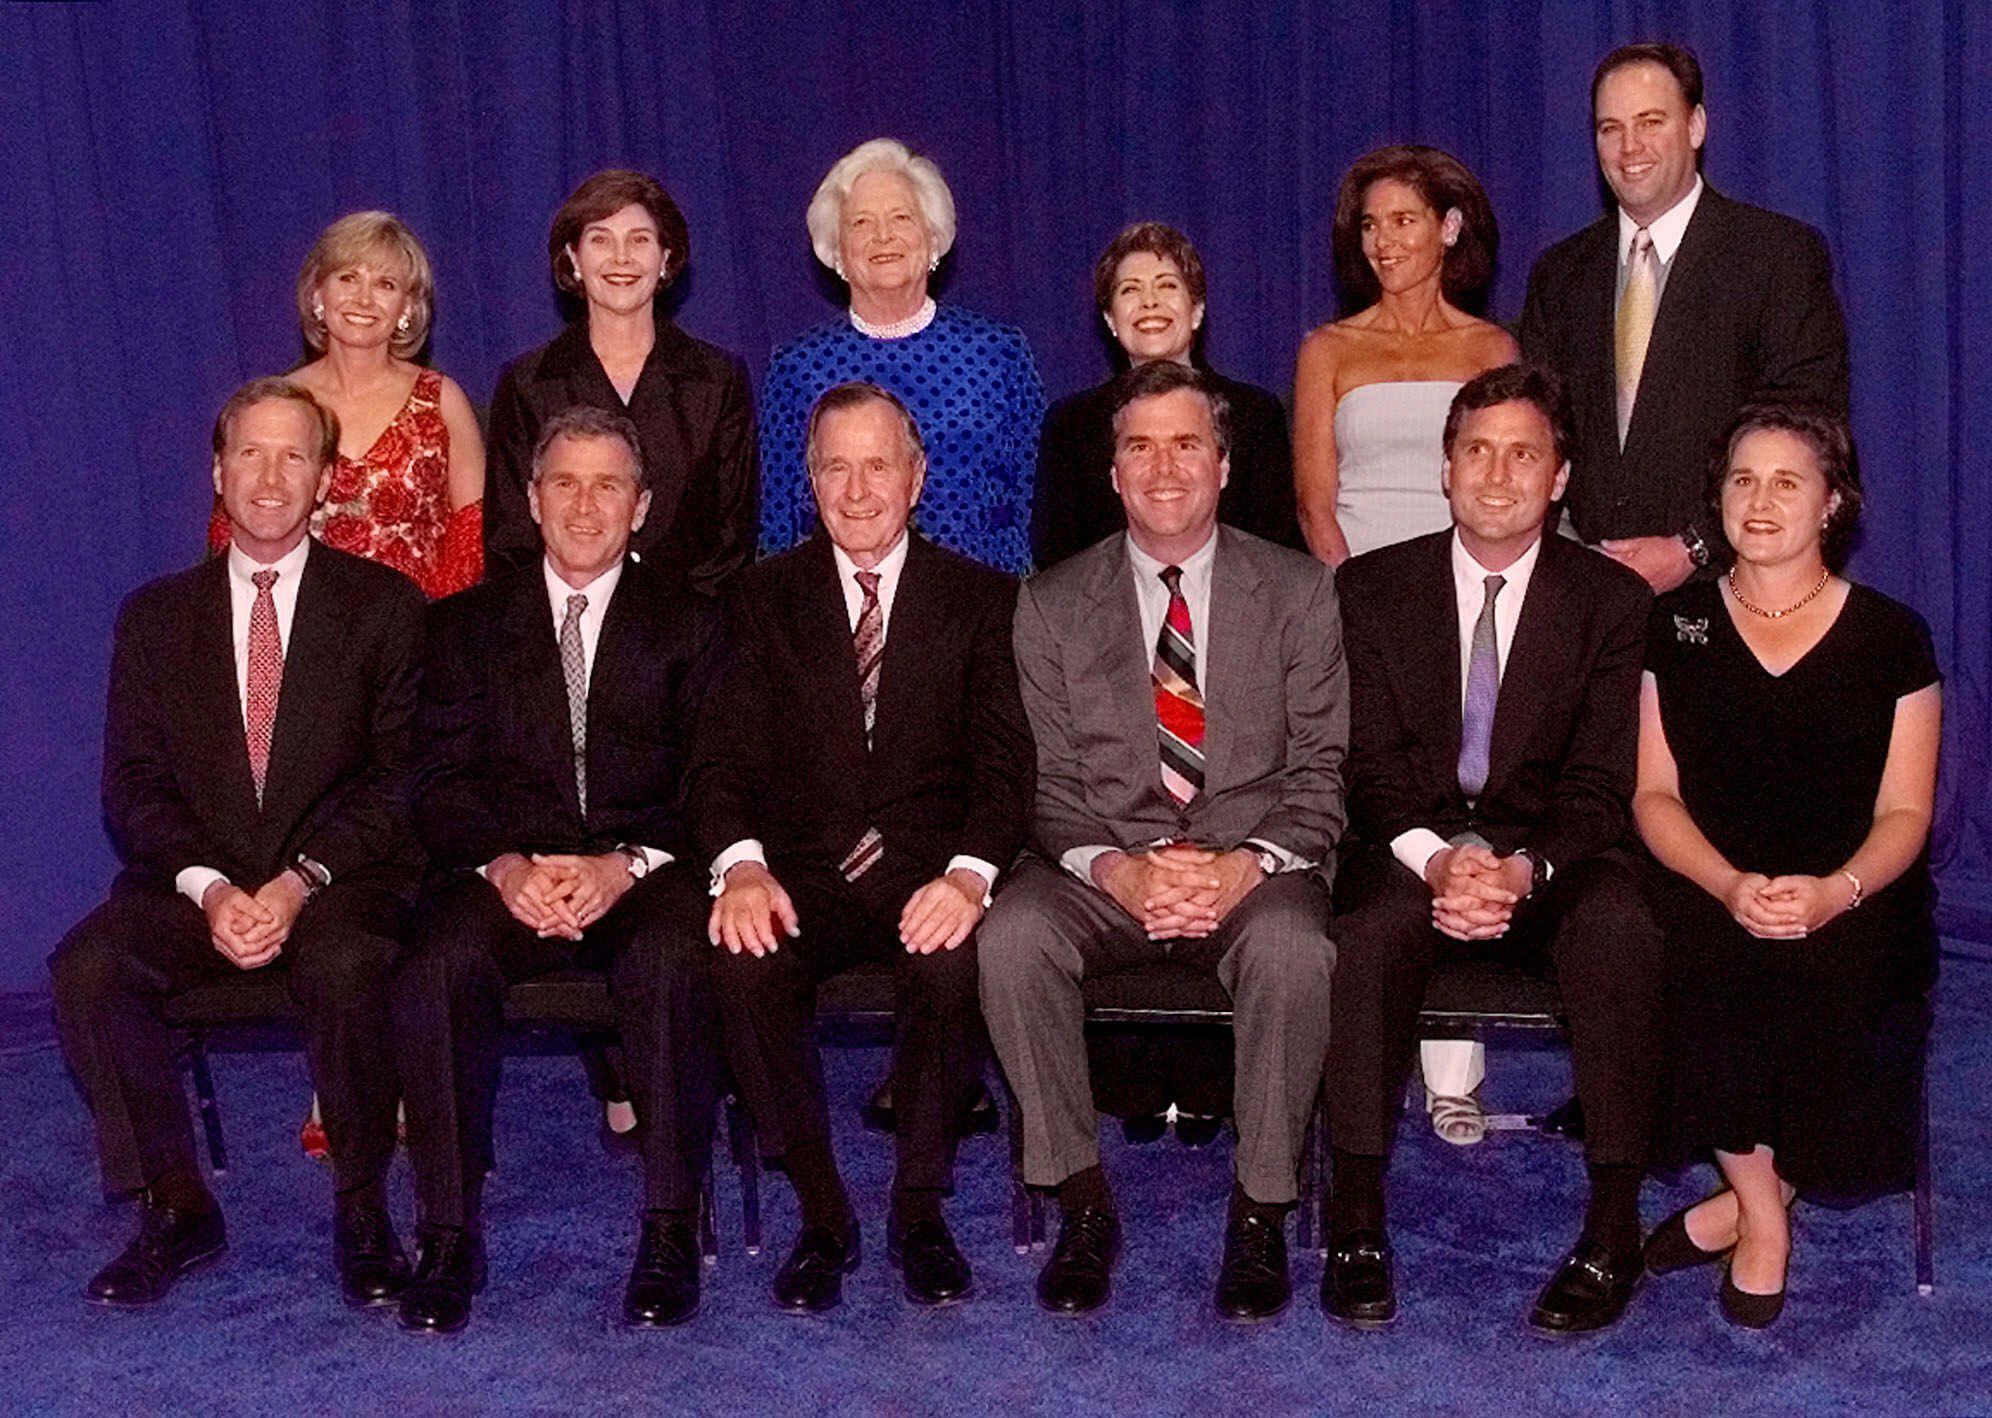 Remembering George H W Bush Through The Years